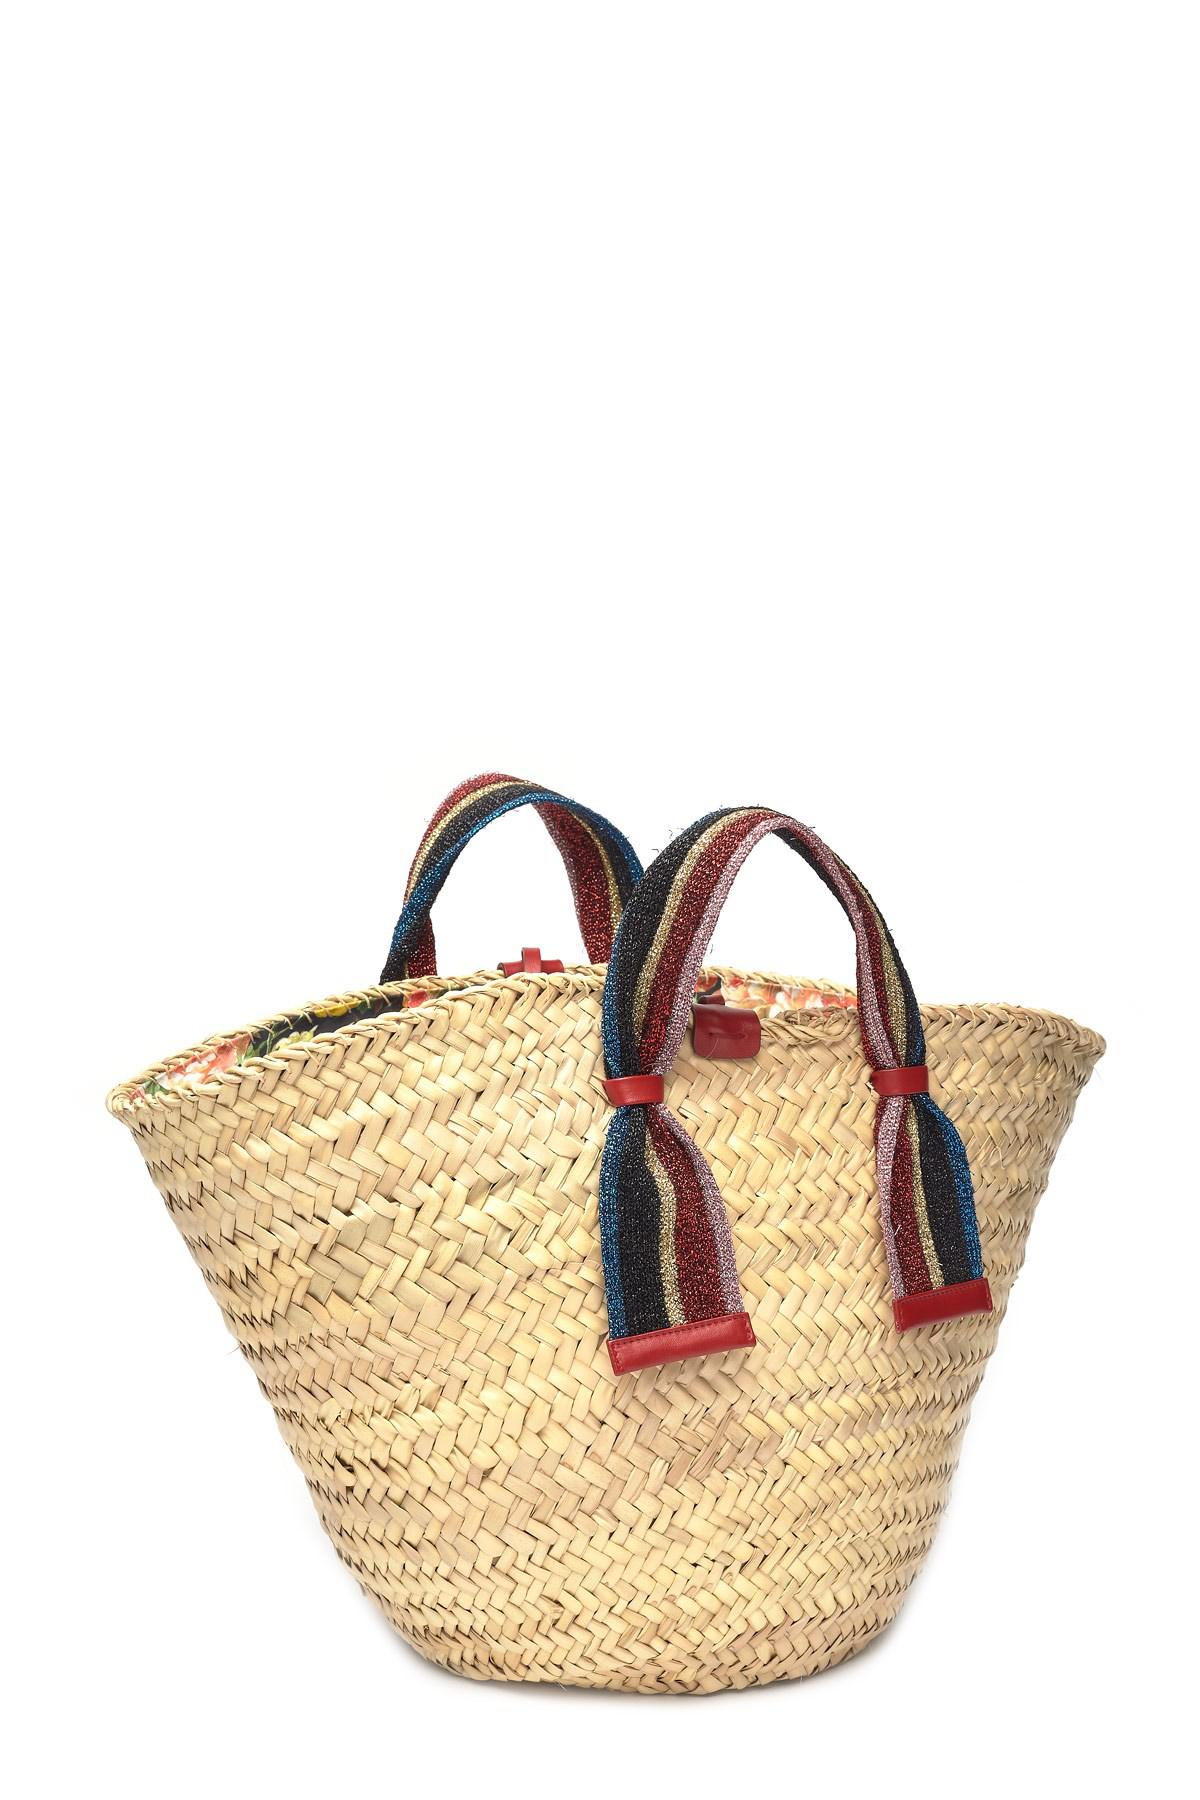 ca3e1a6dc3b Dolce   Gabbana - Natural Kendra Lurex-trimmed Embellished Straw Tote -  Lyst. View fullscreen